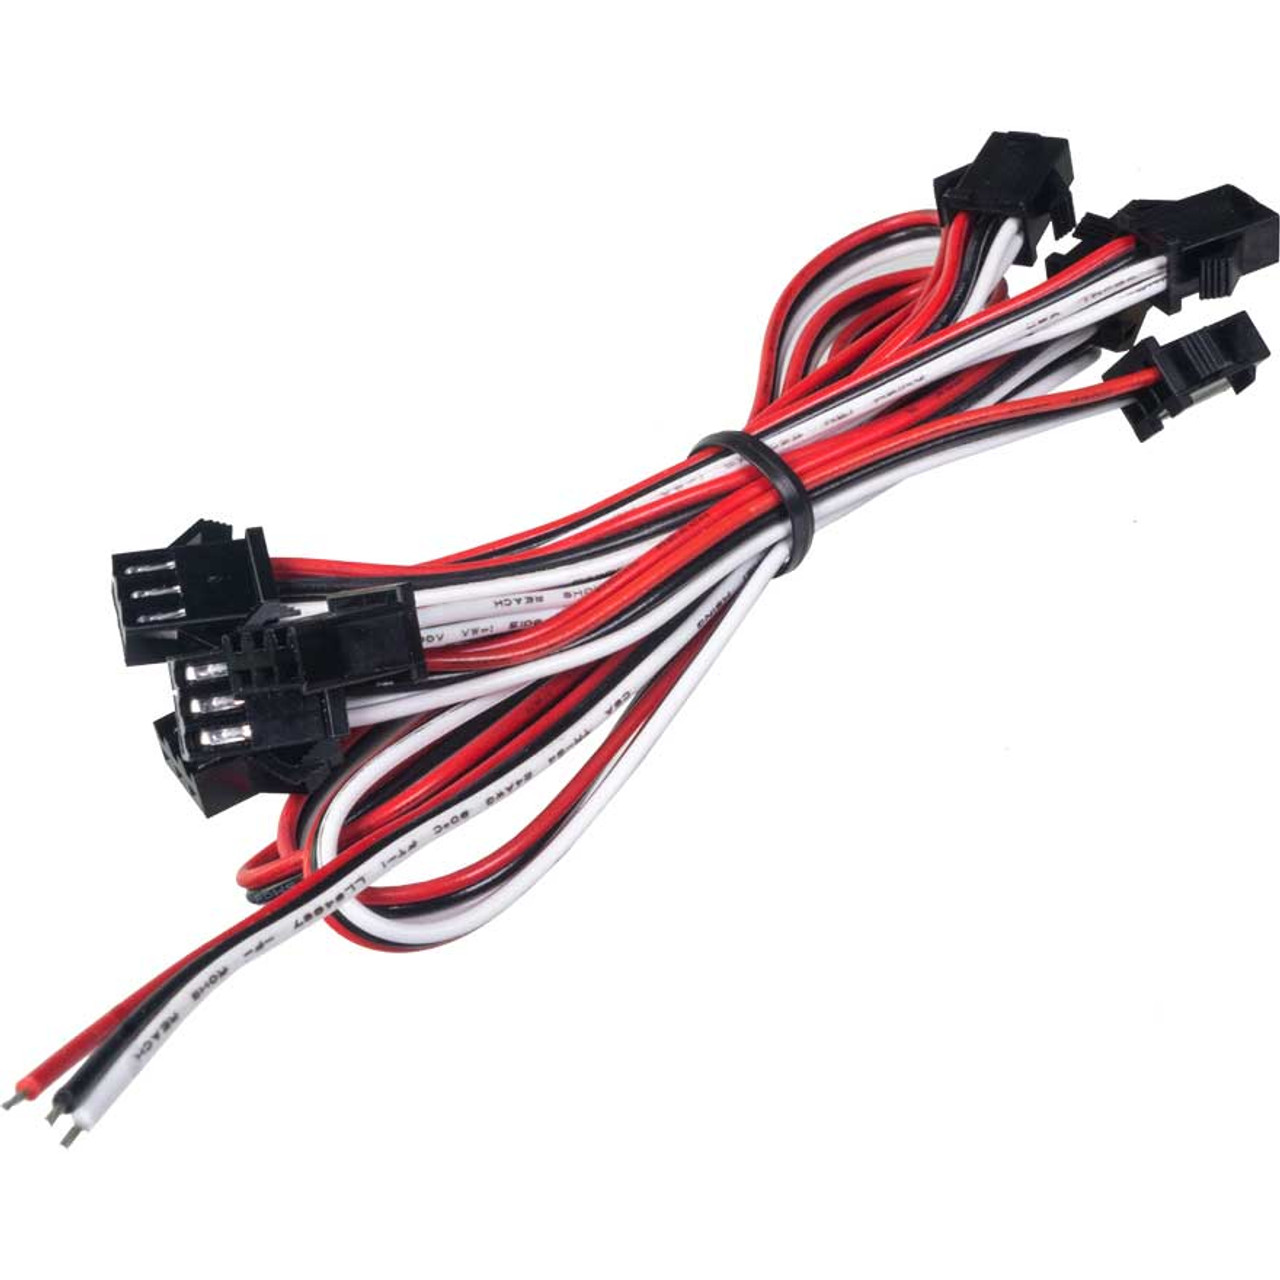 8 Connection Power Distribution Cable